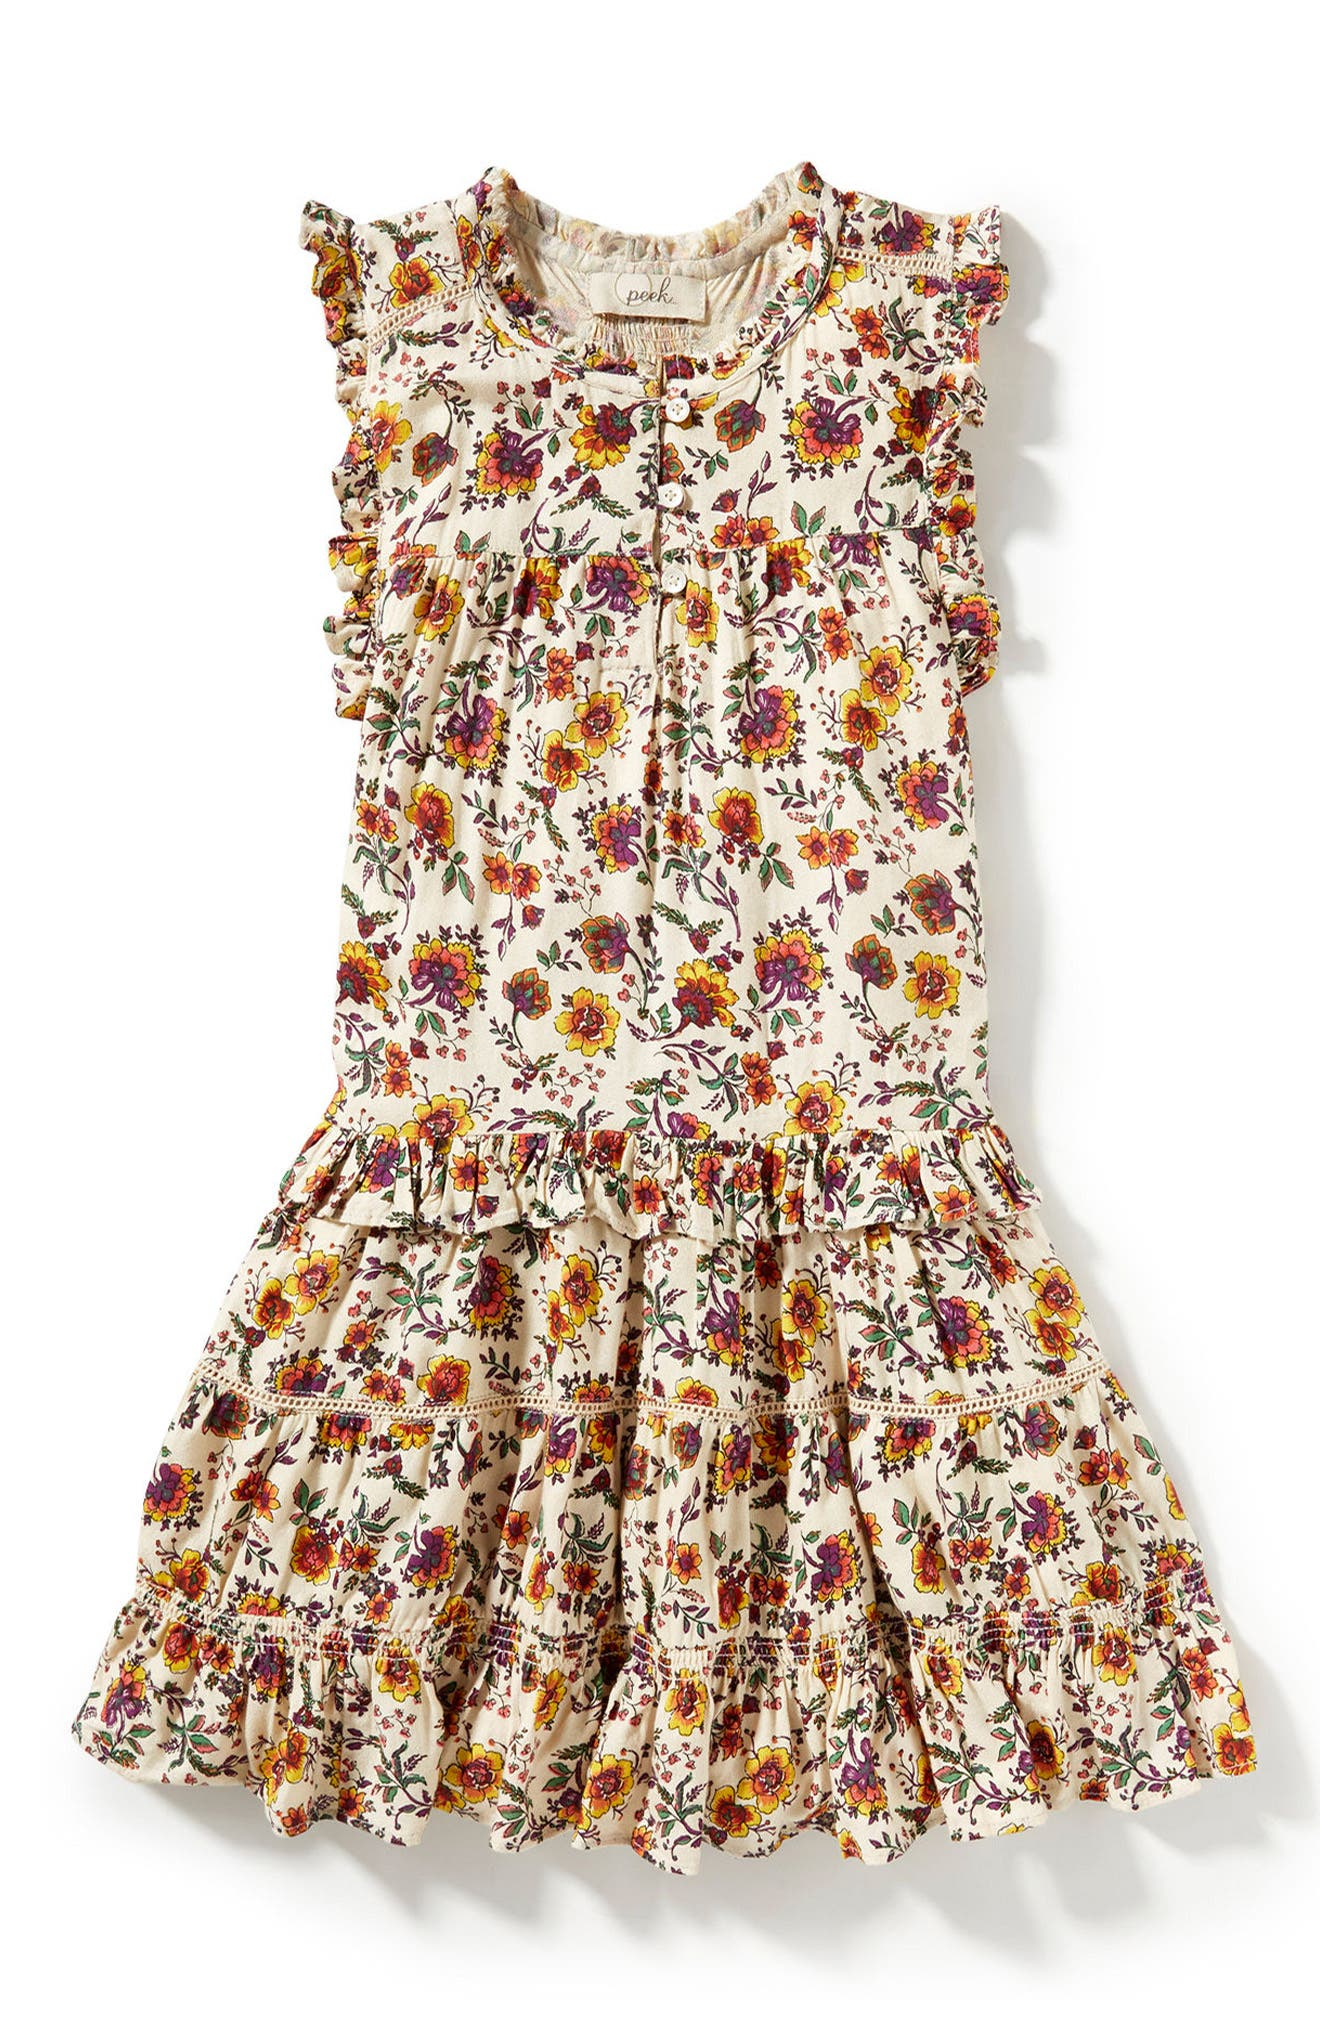 Natalie Print Dress,                             Main thumbnail 1, color,                             Cream